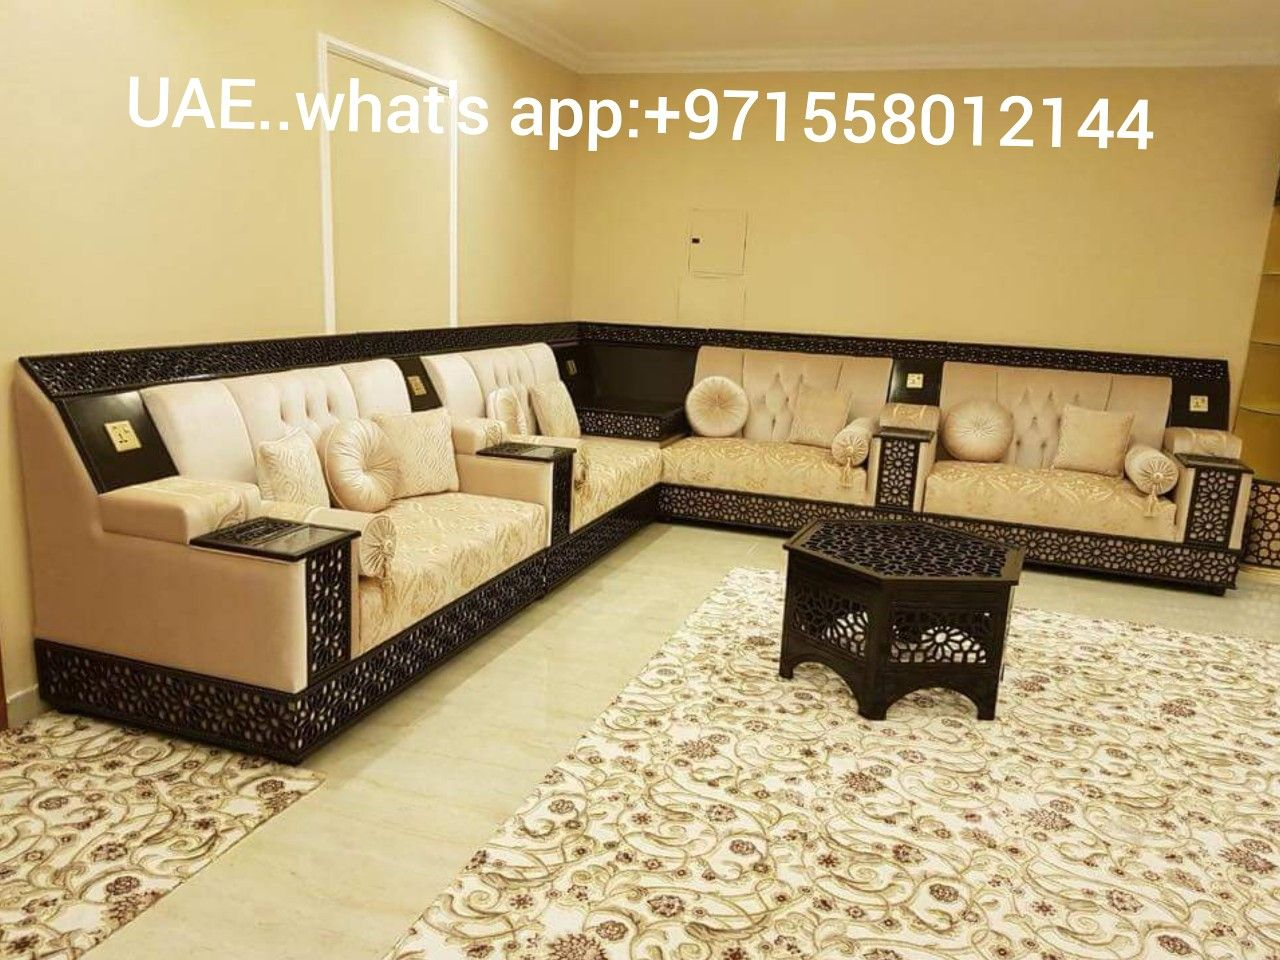 Pin By Sameh On My Saves Egyptian Furniture Furniture Room